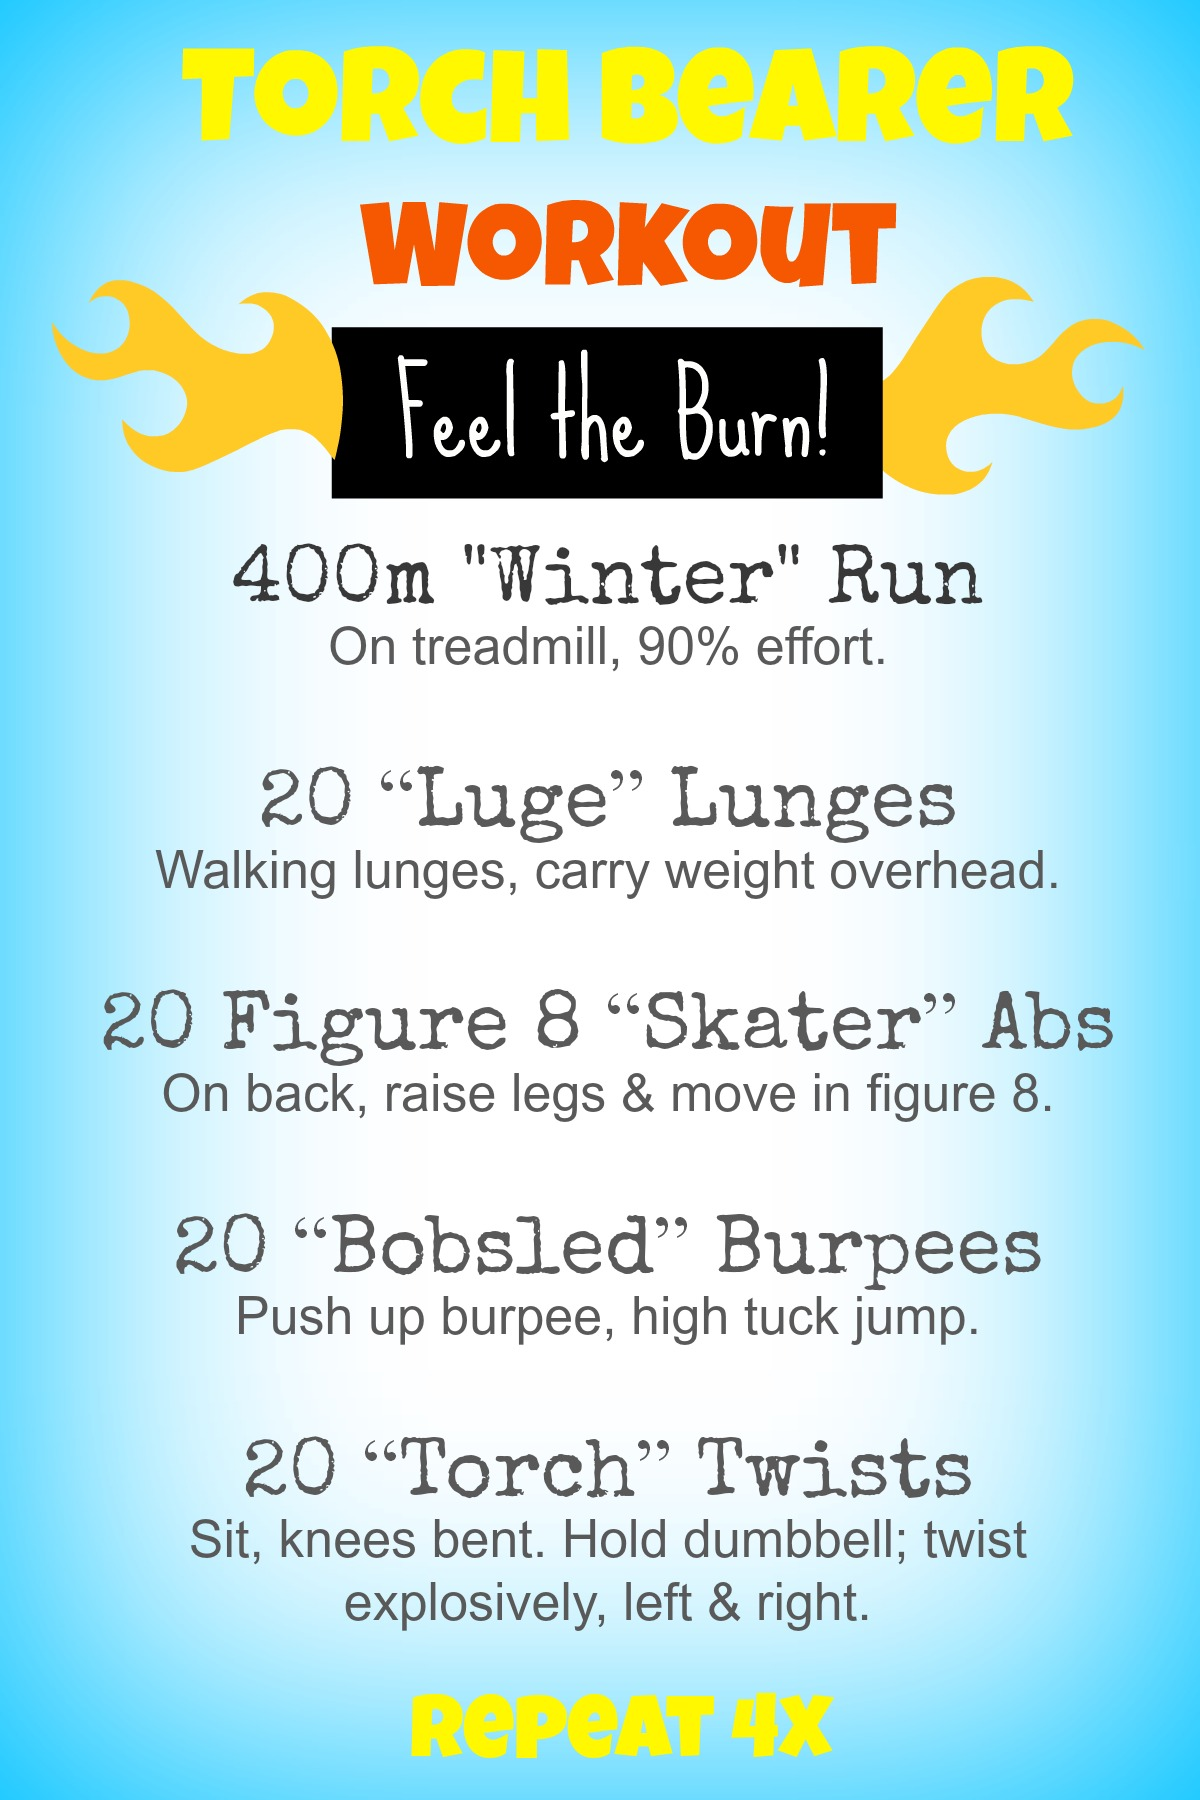 Torch Bearer Workout